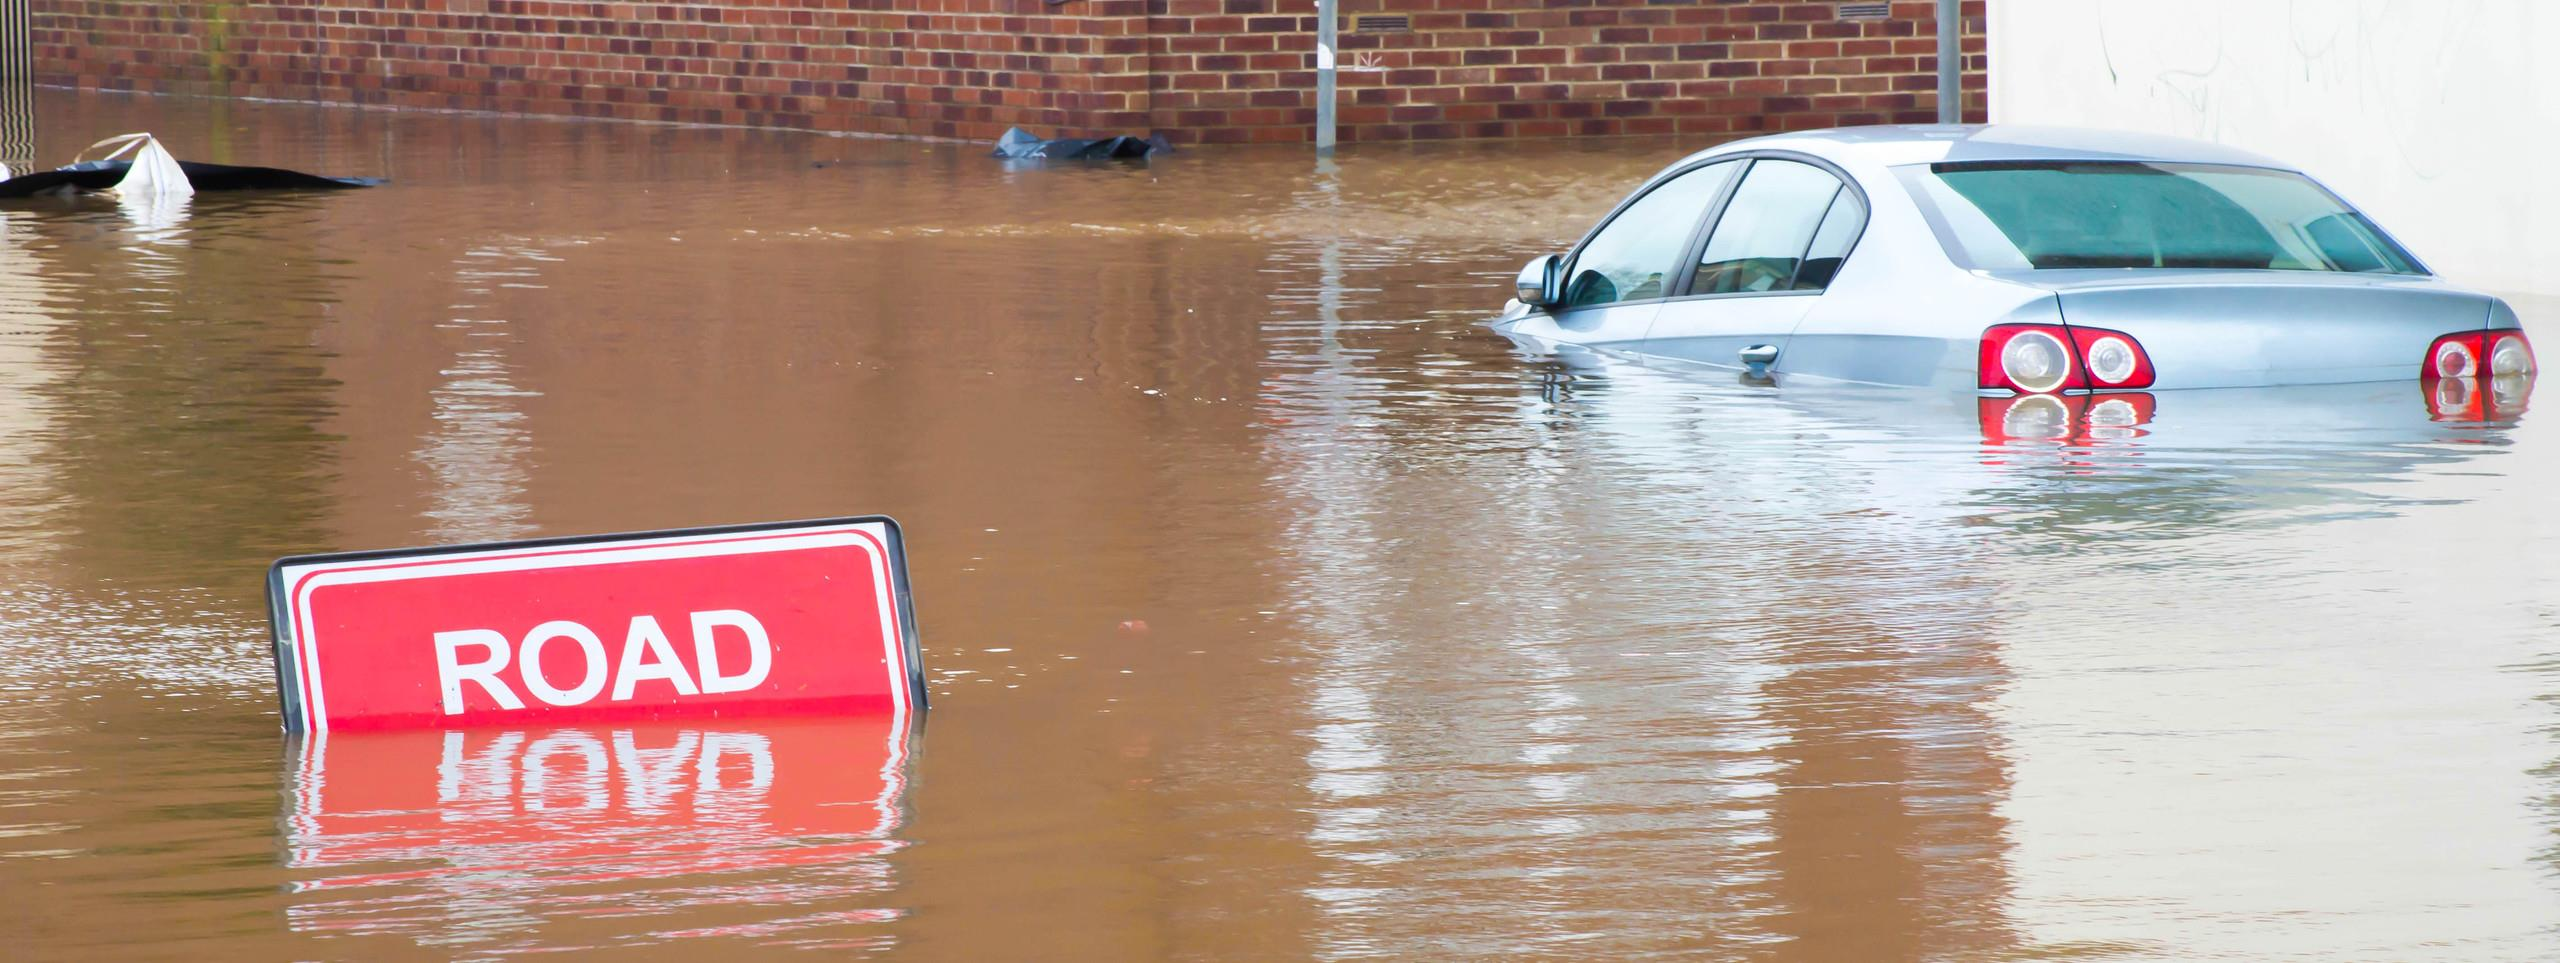 A road sign and car submerged under water caused by a flood in York